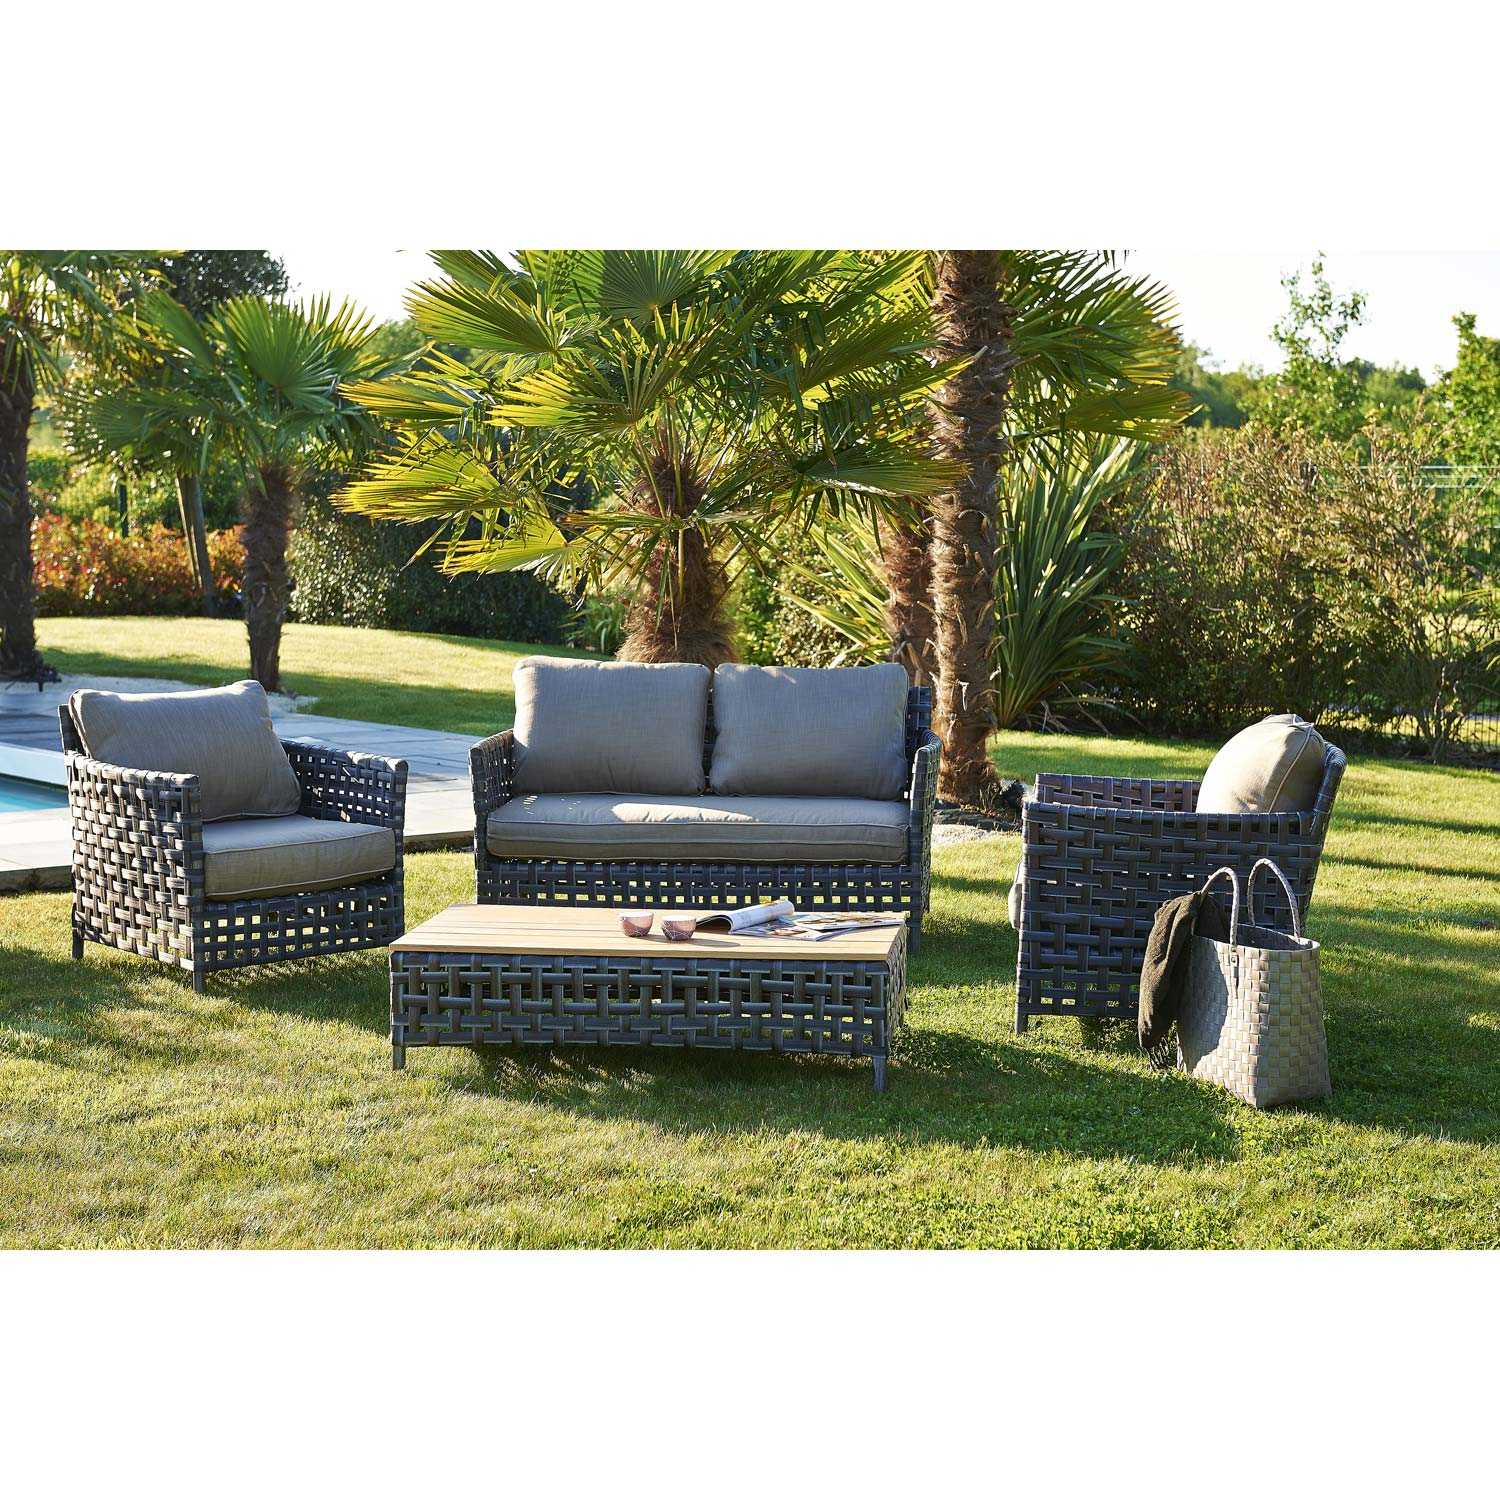 salon bas de jardin riade r sine tress e gris anthracite t canap 2fauteuils leroy merlin. Black Bedroom Furniture Sets. Home Design Ideas